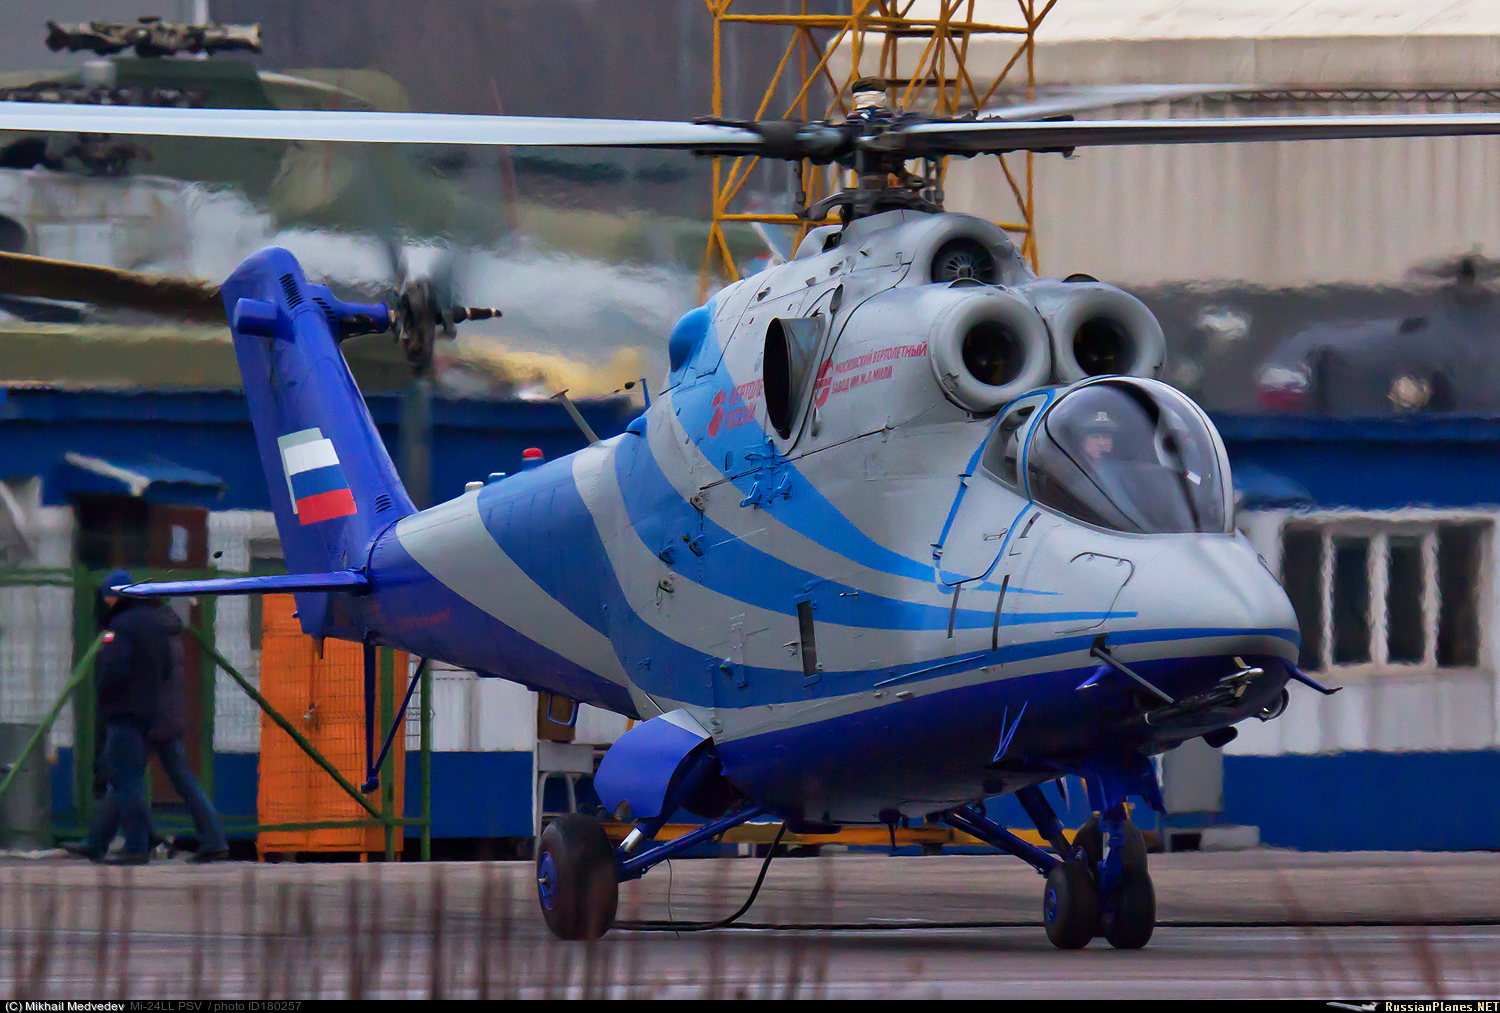 http://russianplanes.net/images/to181000/180257.jpg